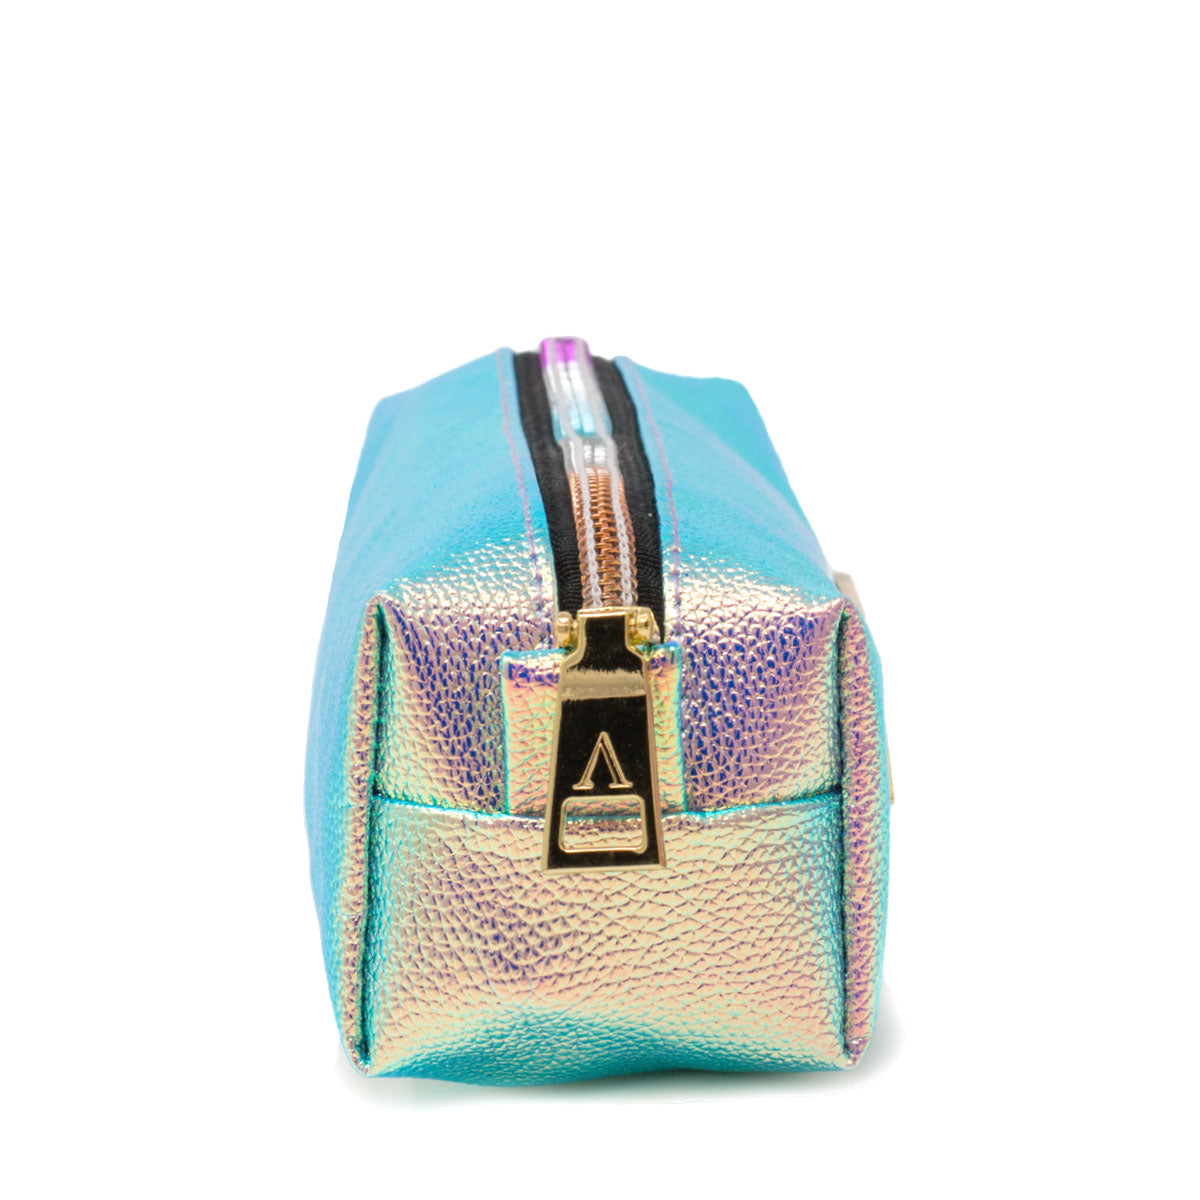 Side view of iridescent pink pencil bag with gold plated zipper puller and rainbow zipper.